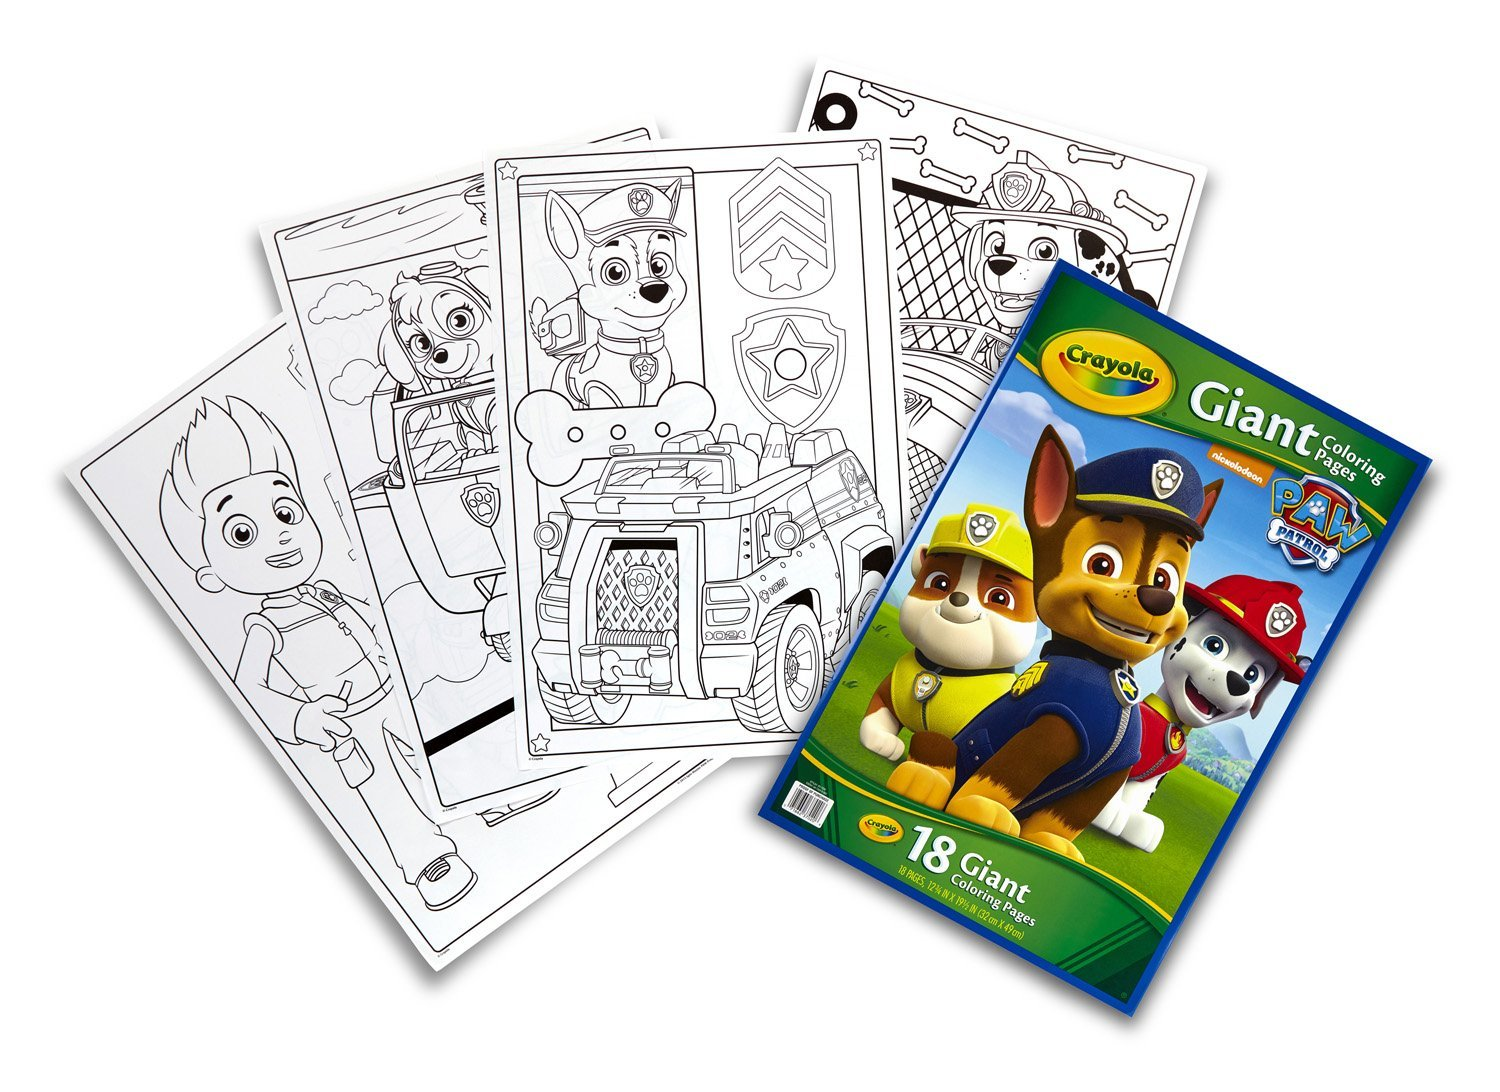 Paw Patrol Giant Coloring Pages 18 Giant Coloring Pages By Crayola